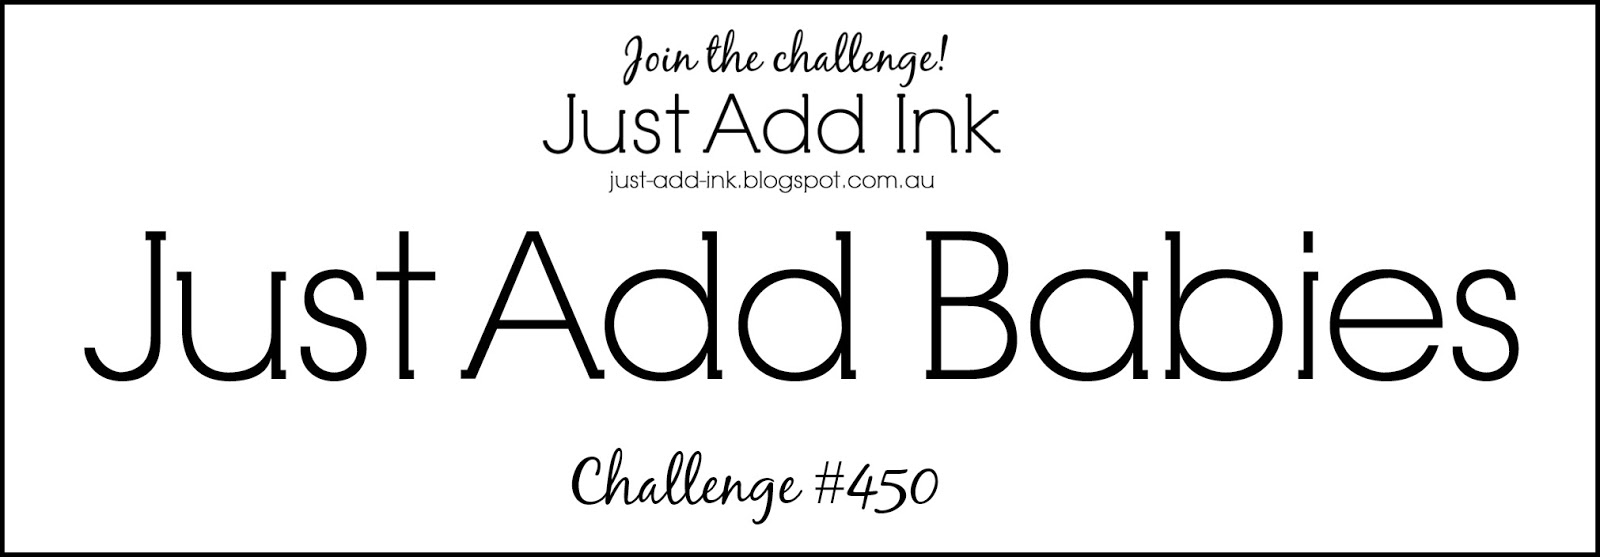 Mae Collins Just Add Babies For The Jai Challenge This Week